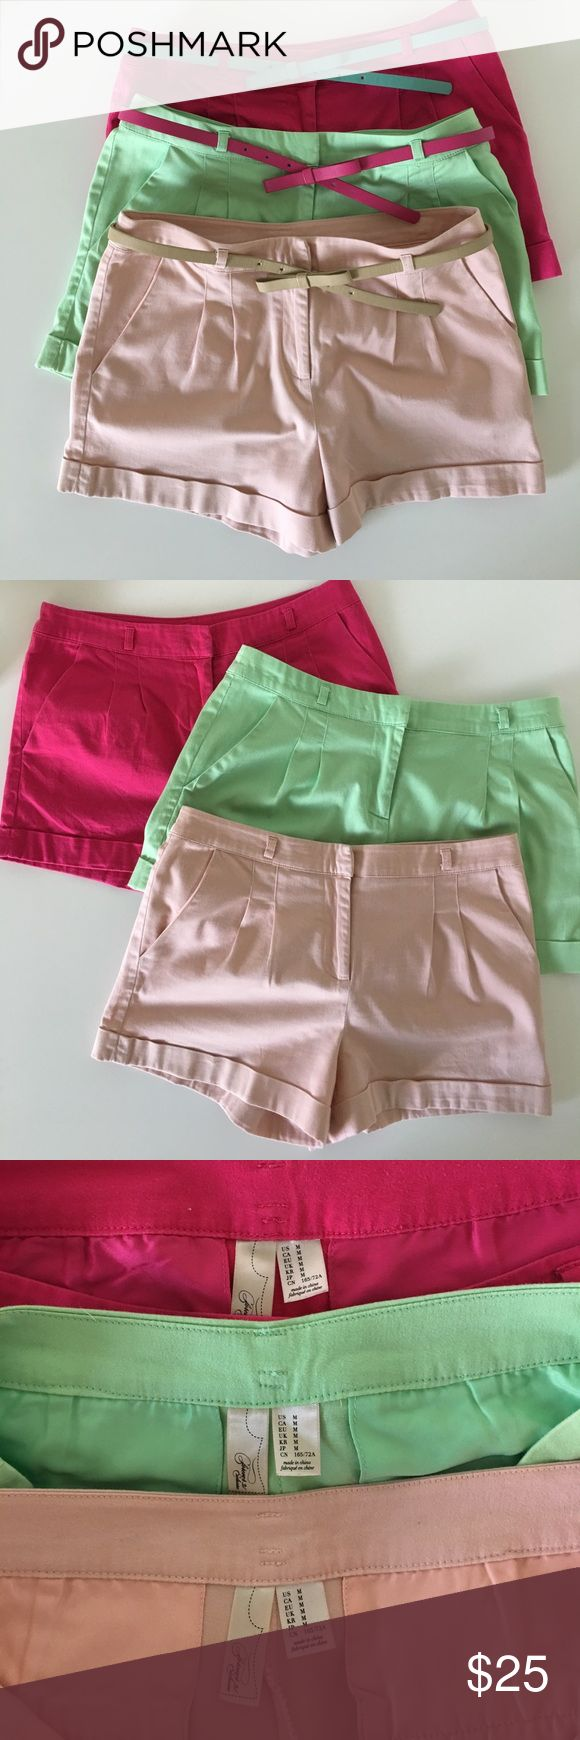 Bundle Forever21 Colorful Cuffed Shorts Bundle of 3 Shorts with 3 belts (will not separate items). Brand: Forever21, Size: Medium, Short Color: Hot Pink, Blush Pink, & Pistachio Green. Belt Colors: Hot Pink, Turquoise and Tan. Items have front pockets and back pockets, cuffed style shorts, front zipper, button and metal clasp. There are no stains, No tears, No missing buttons or metal clasps, All- Functioning zippers. Good Used Condition. One of the belts is missing a metal piece that it can…